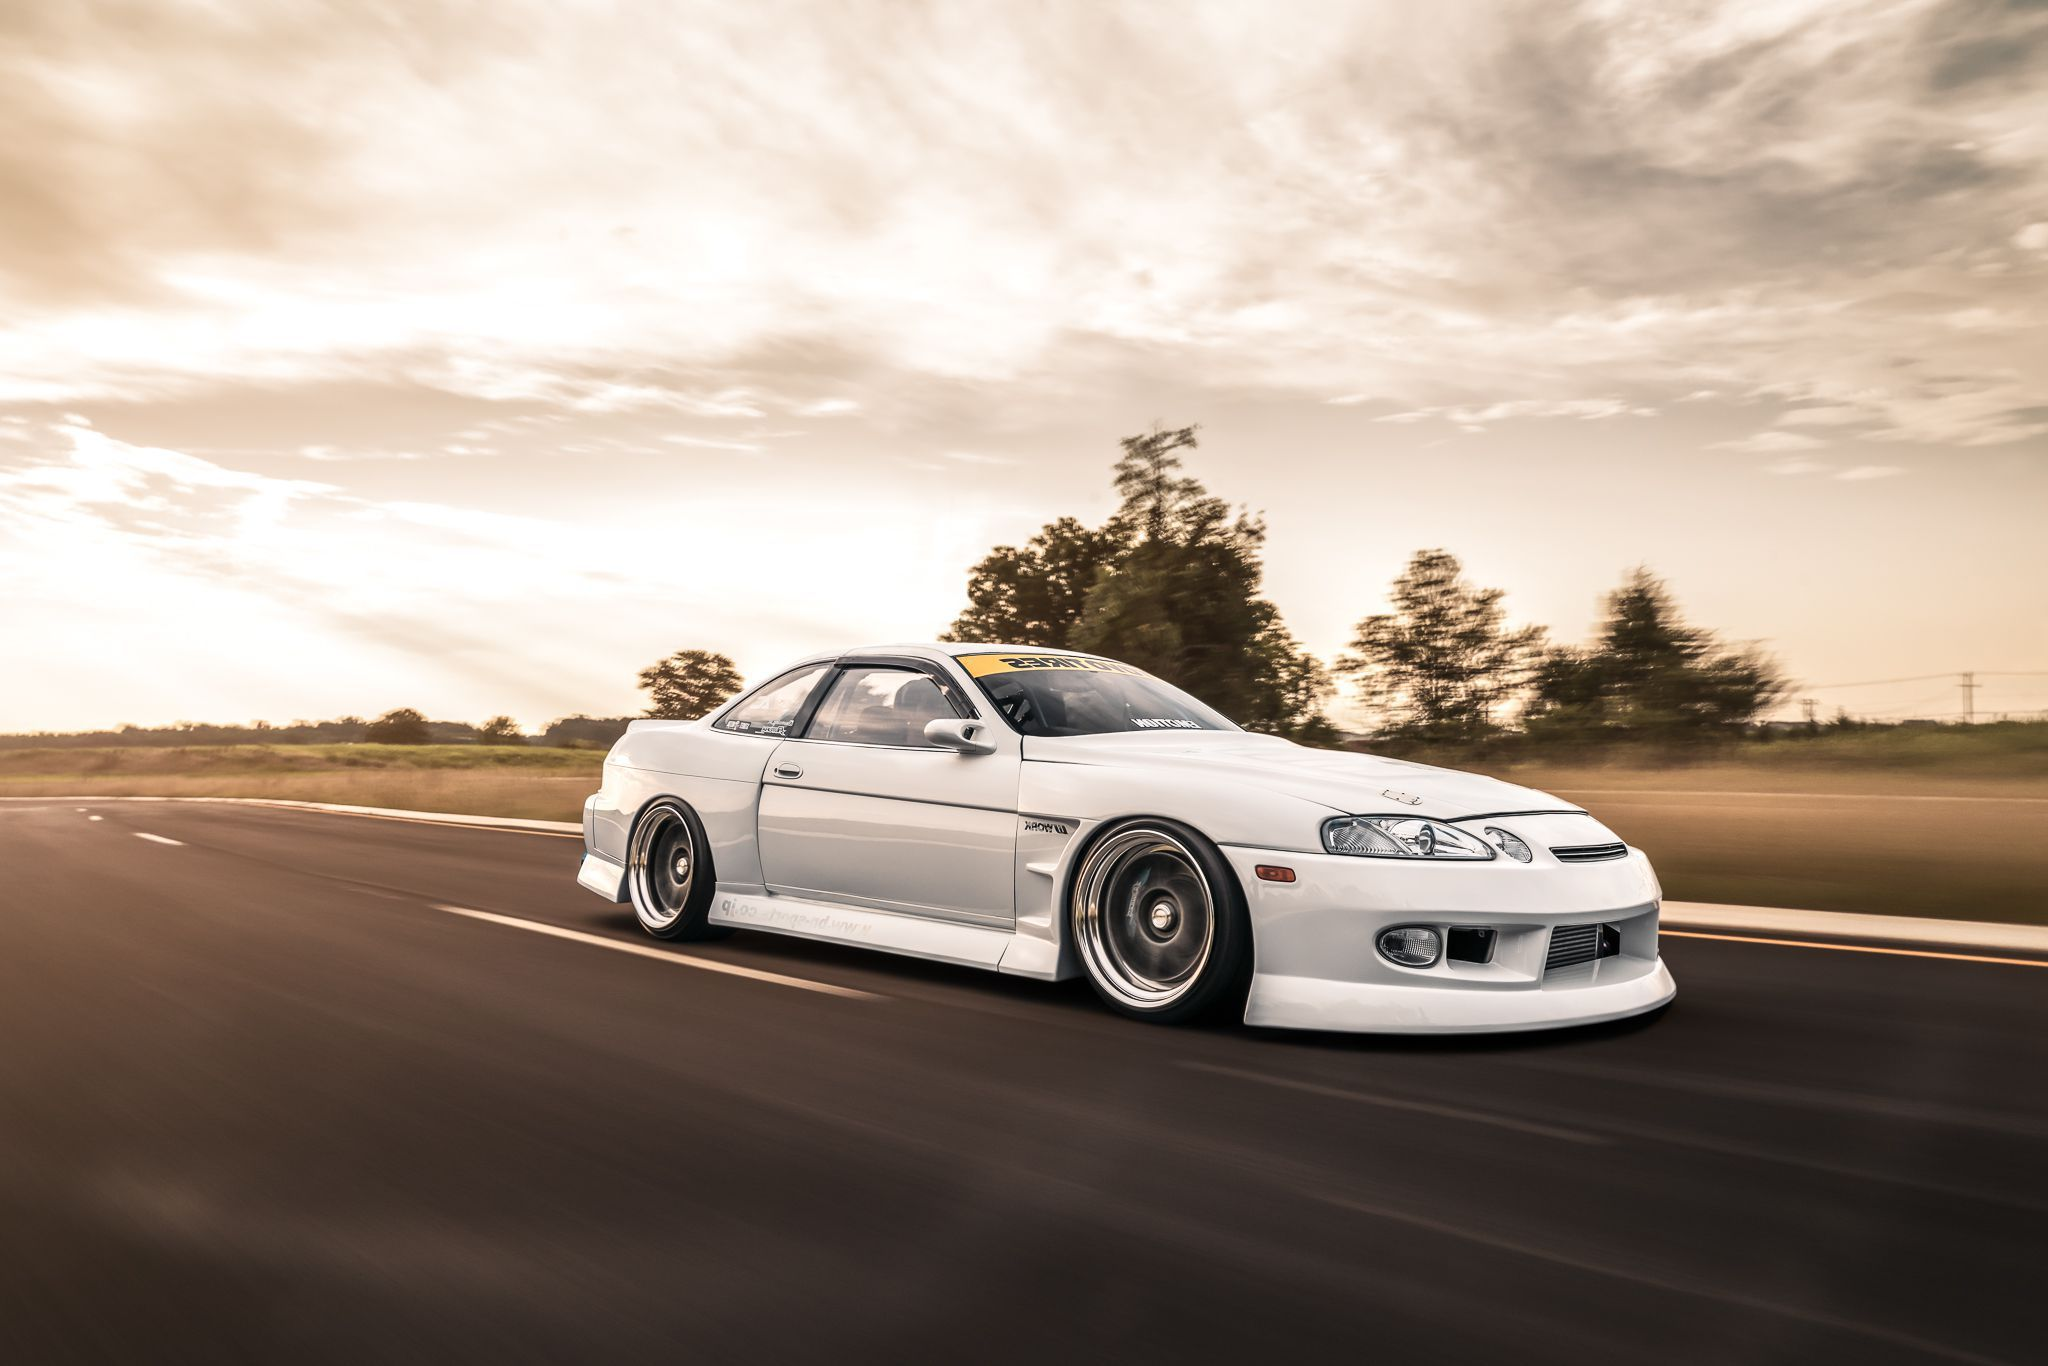 Sc300 In Motion Lexus Import Cars Cars And Motorcycles